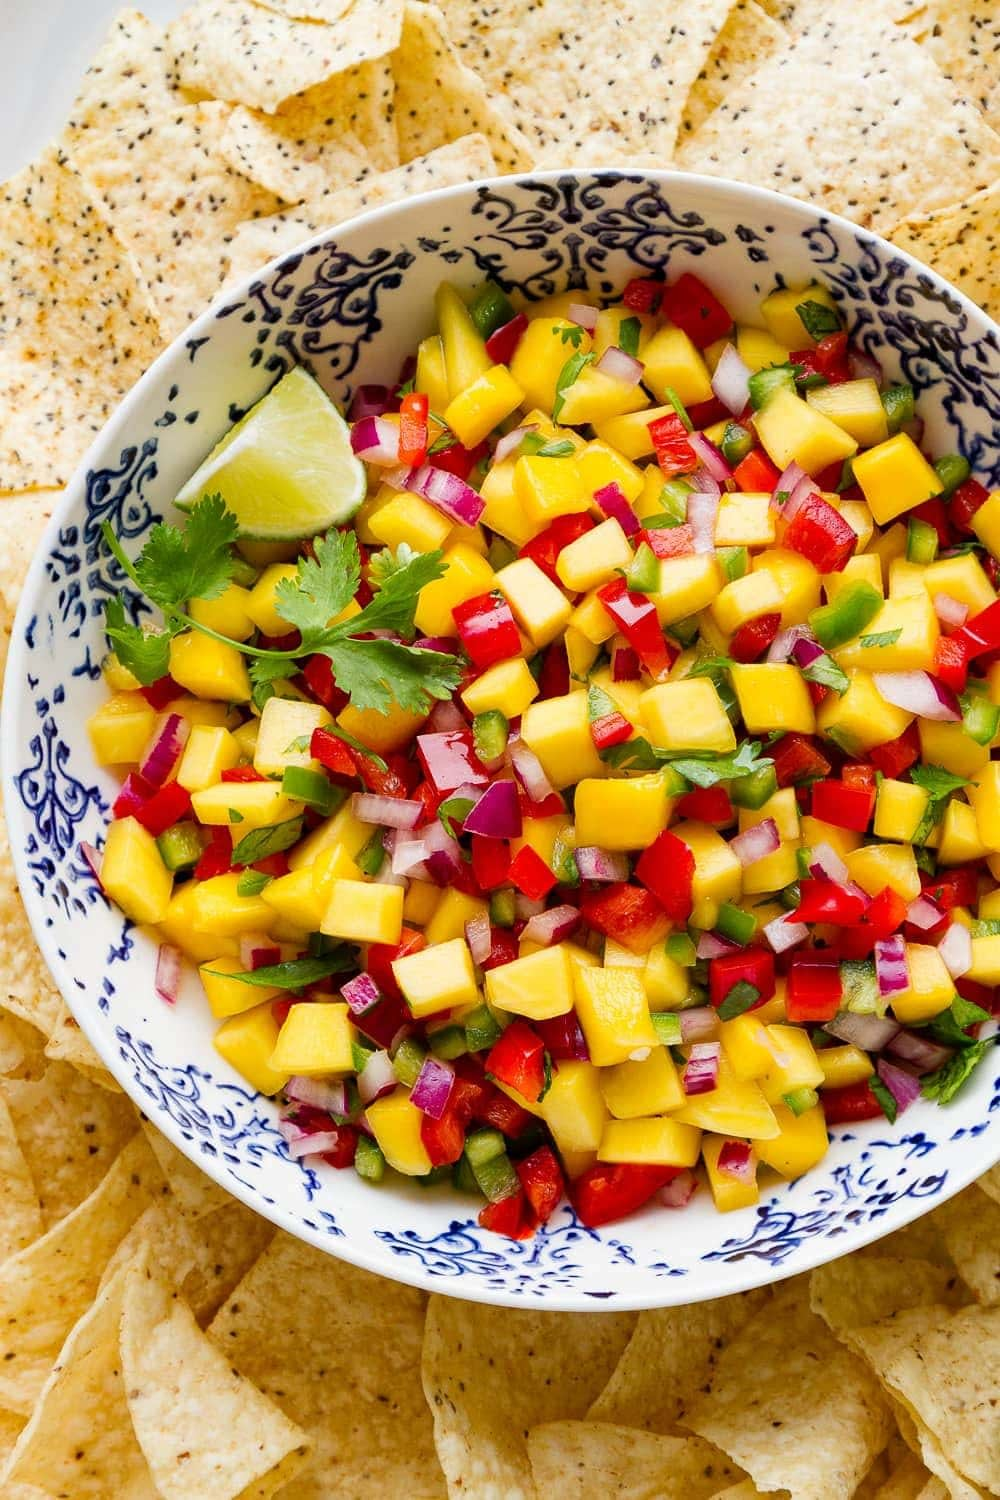 a colorful salsa with red, orange, green, and purple fresh ingredients